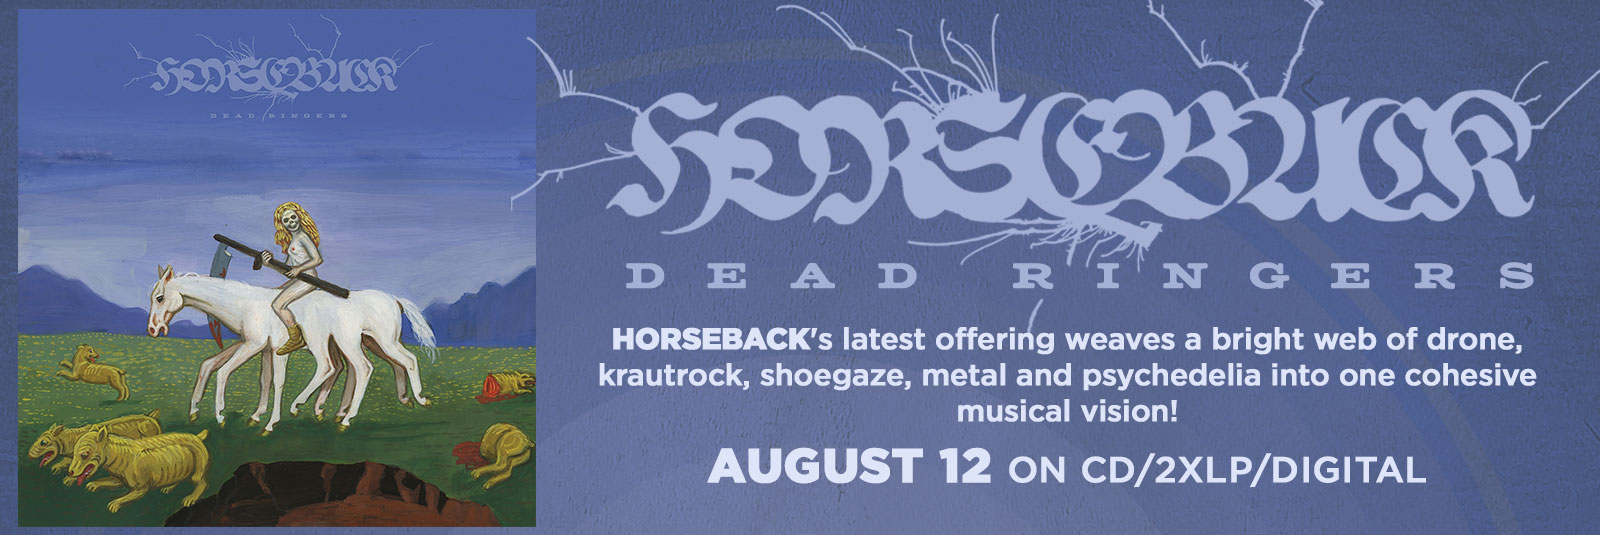 horseback-dead-ringer-lp-cd-merch